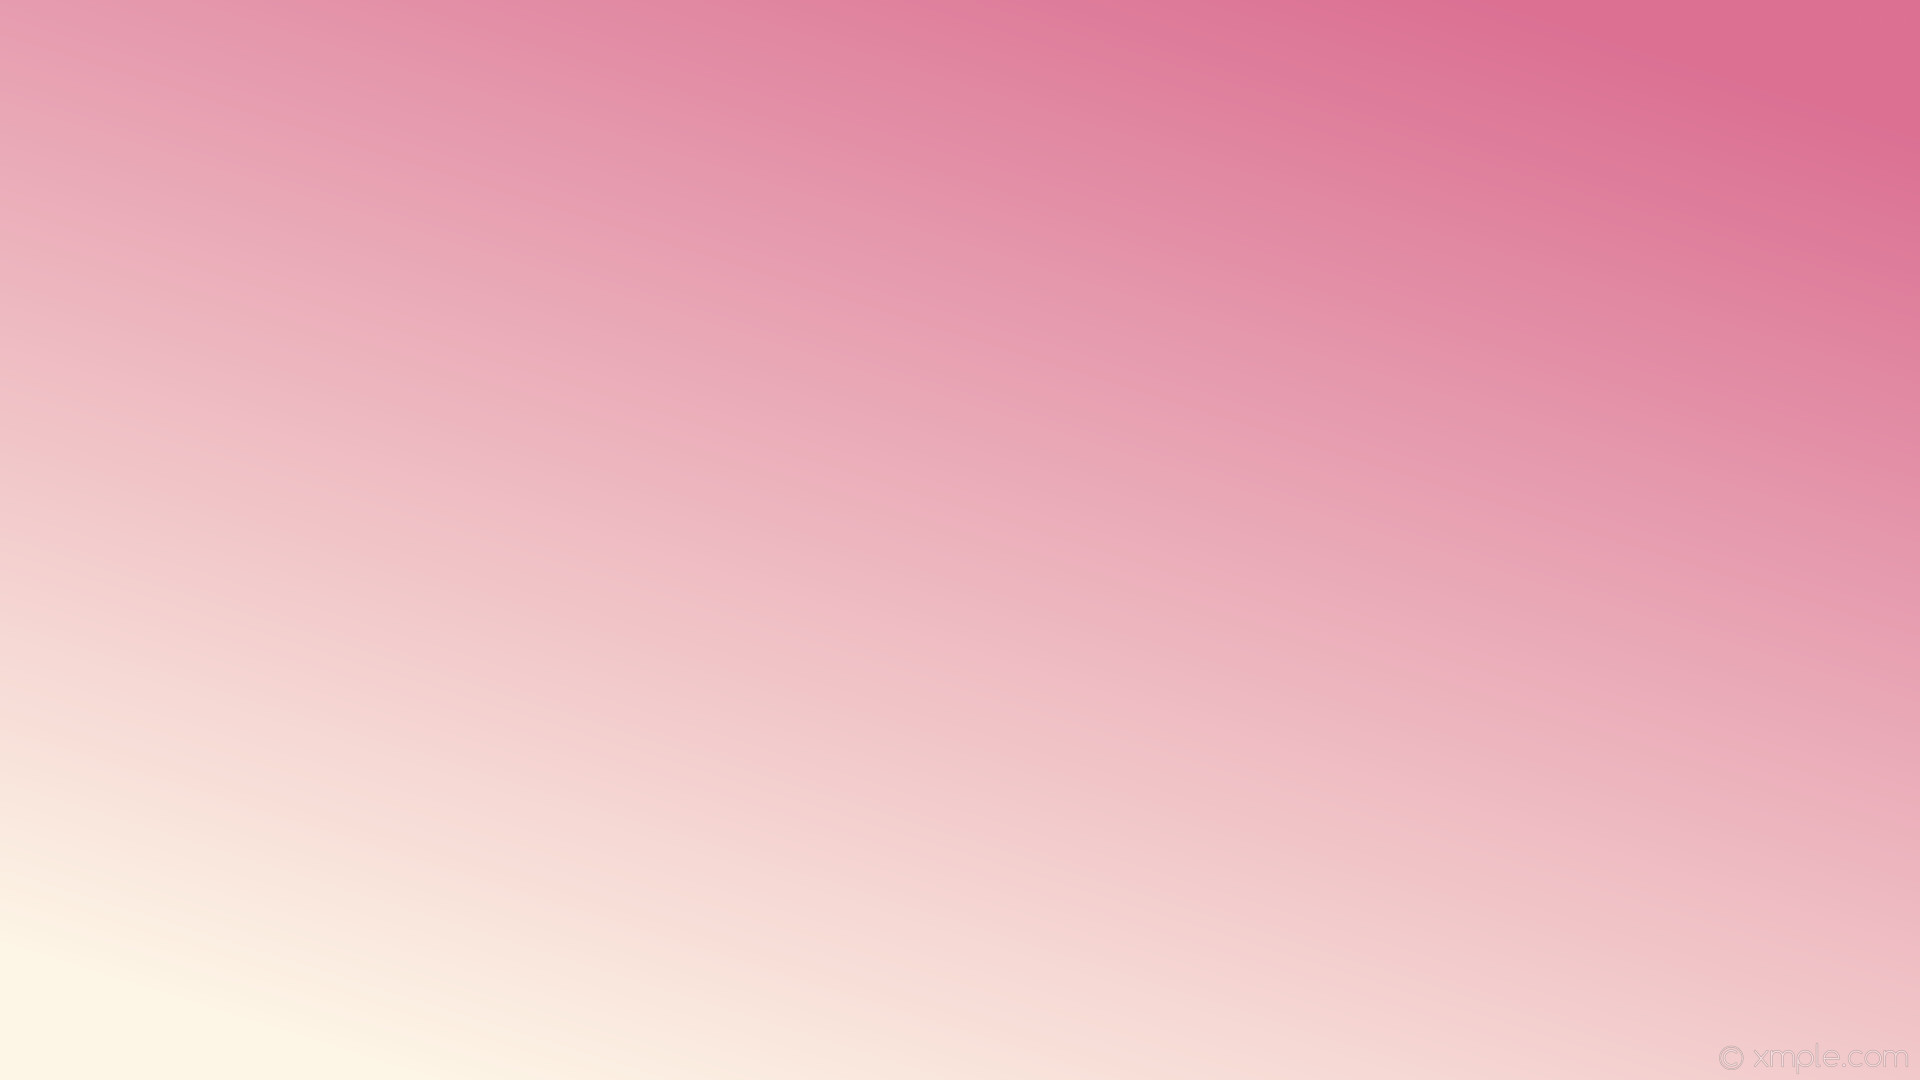 Res: 1920x1080, wallpaper white linear pink gradient pale violet red old lace #db7093  #fdf5e6 45°